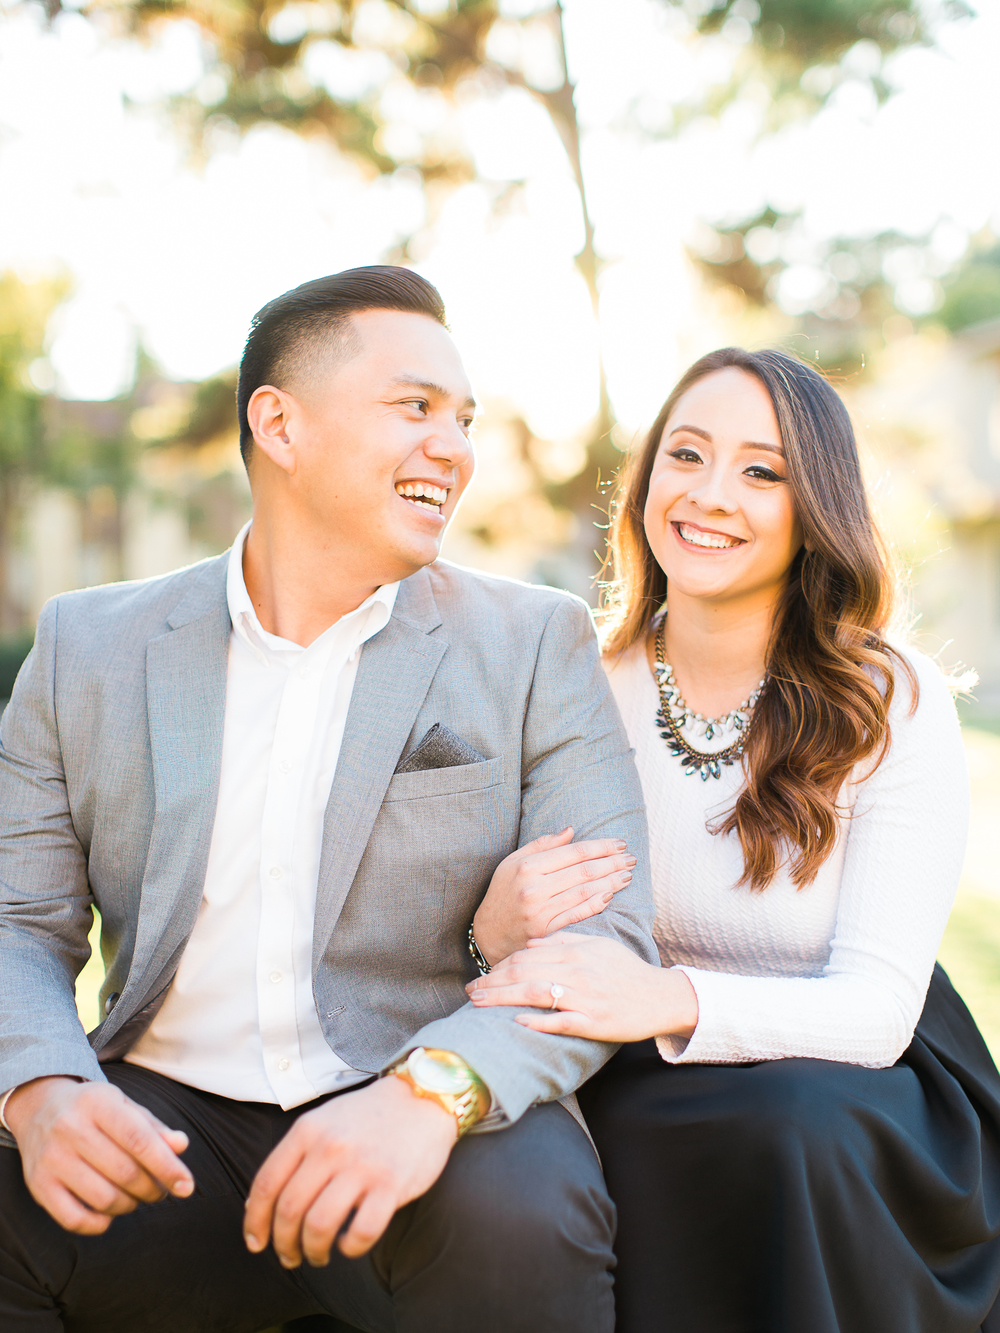 Klint and Yessy Engagement _ Brandon J Ferlin Photography-51.jpg